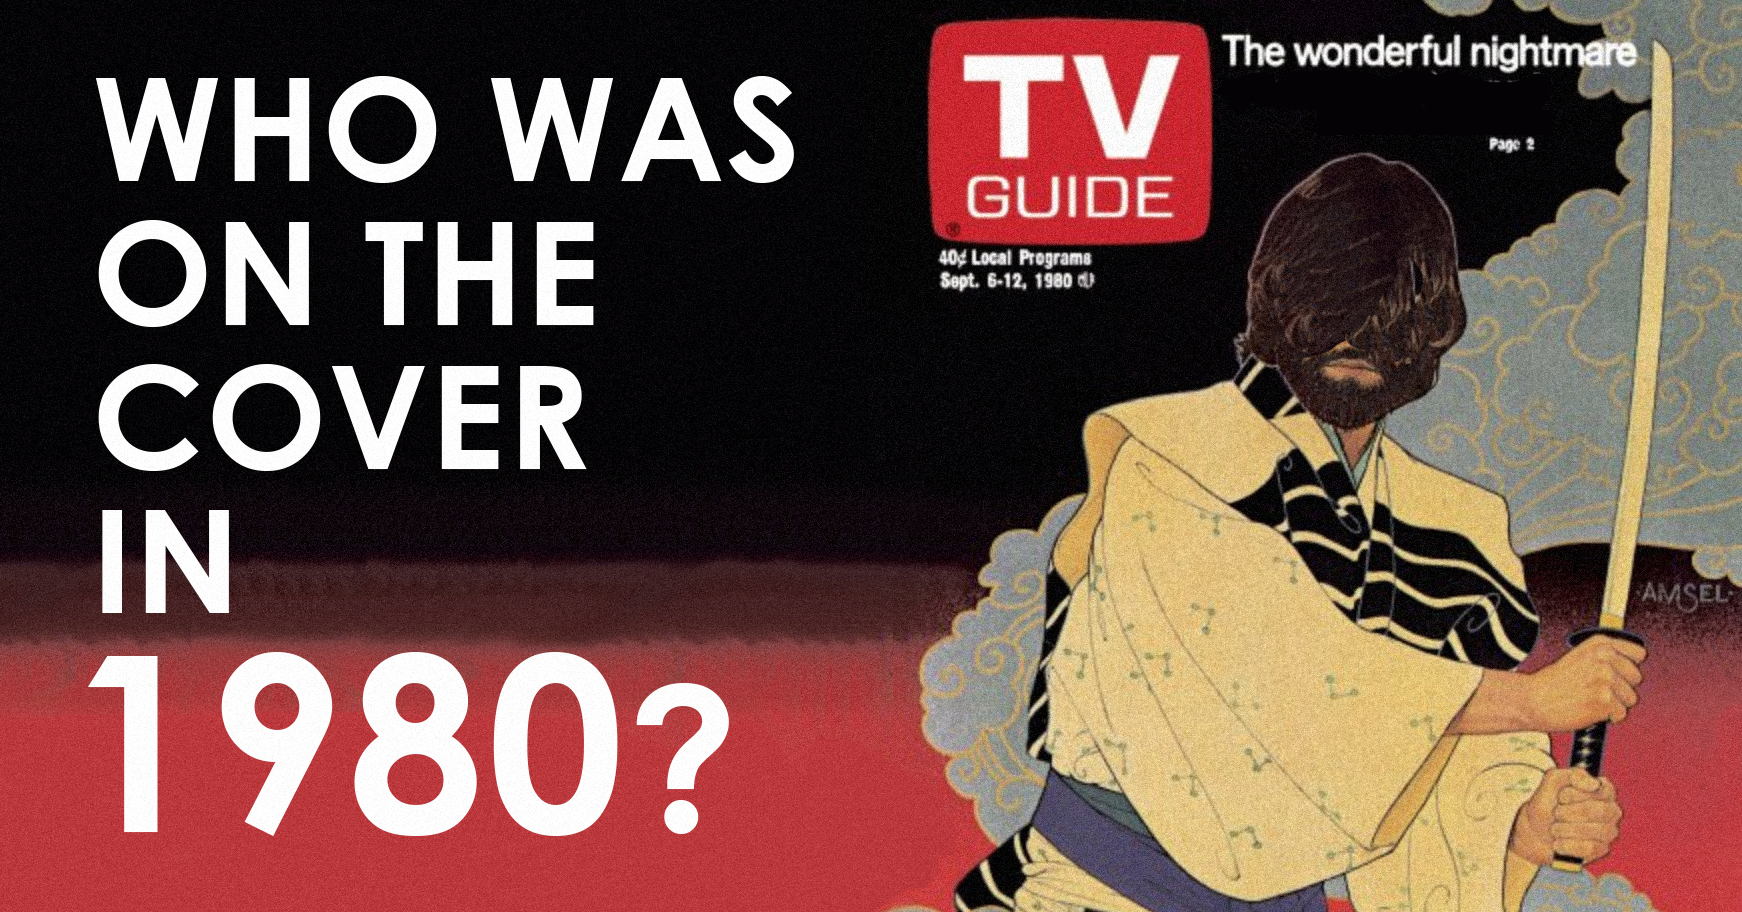 Can you name celebrities on the cover of TV Guide in 1980?